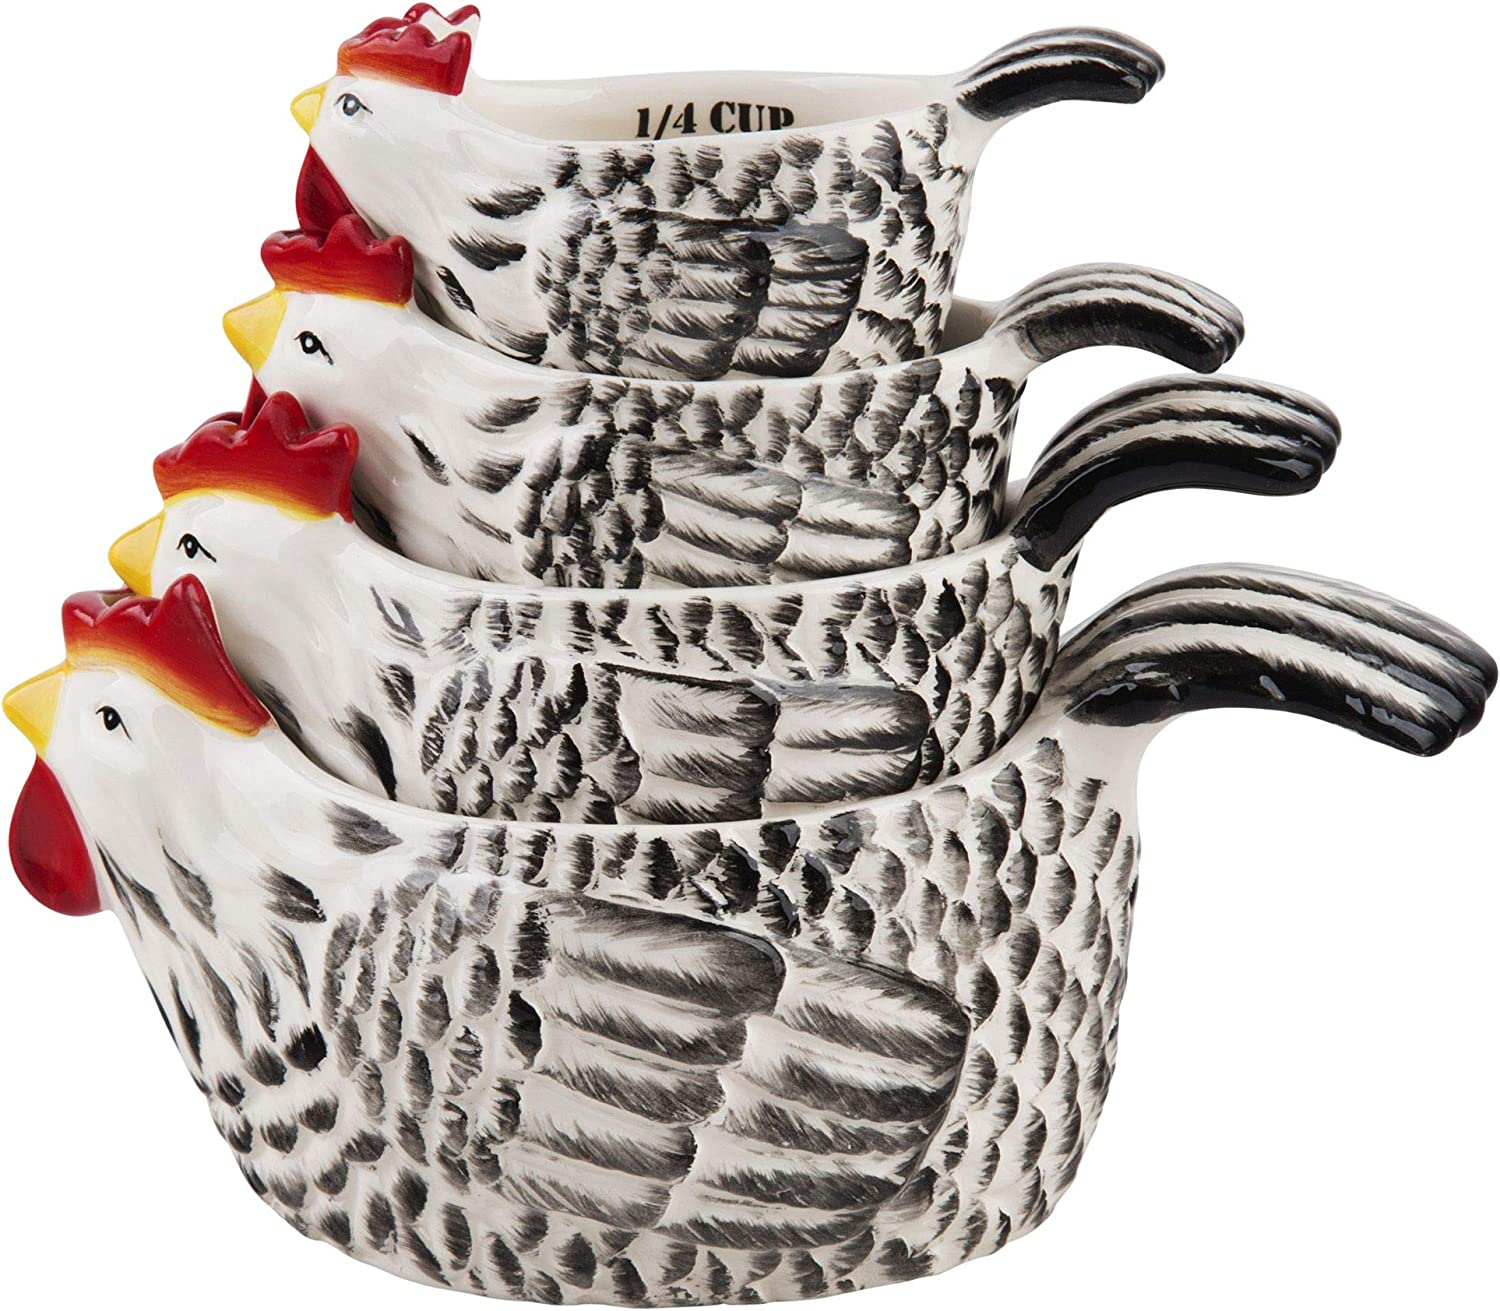 Home Essentials Rooster Shaped Measuring Cups - S/4